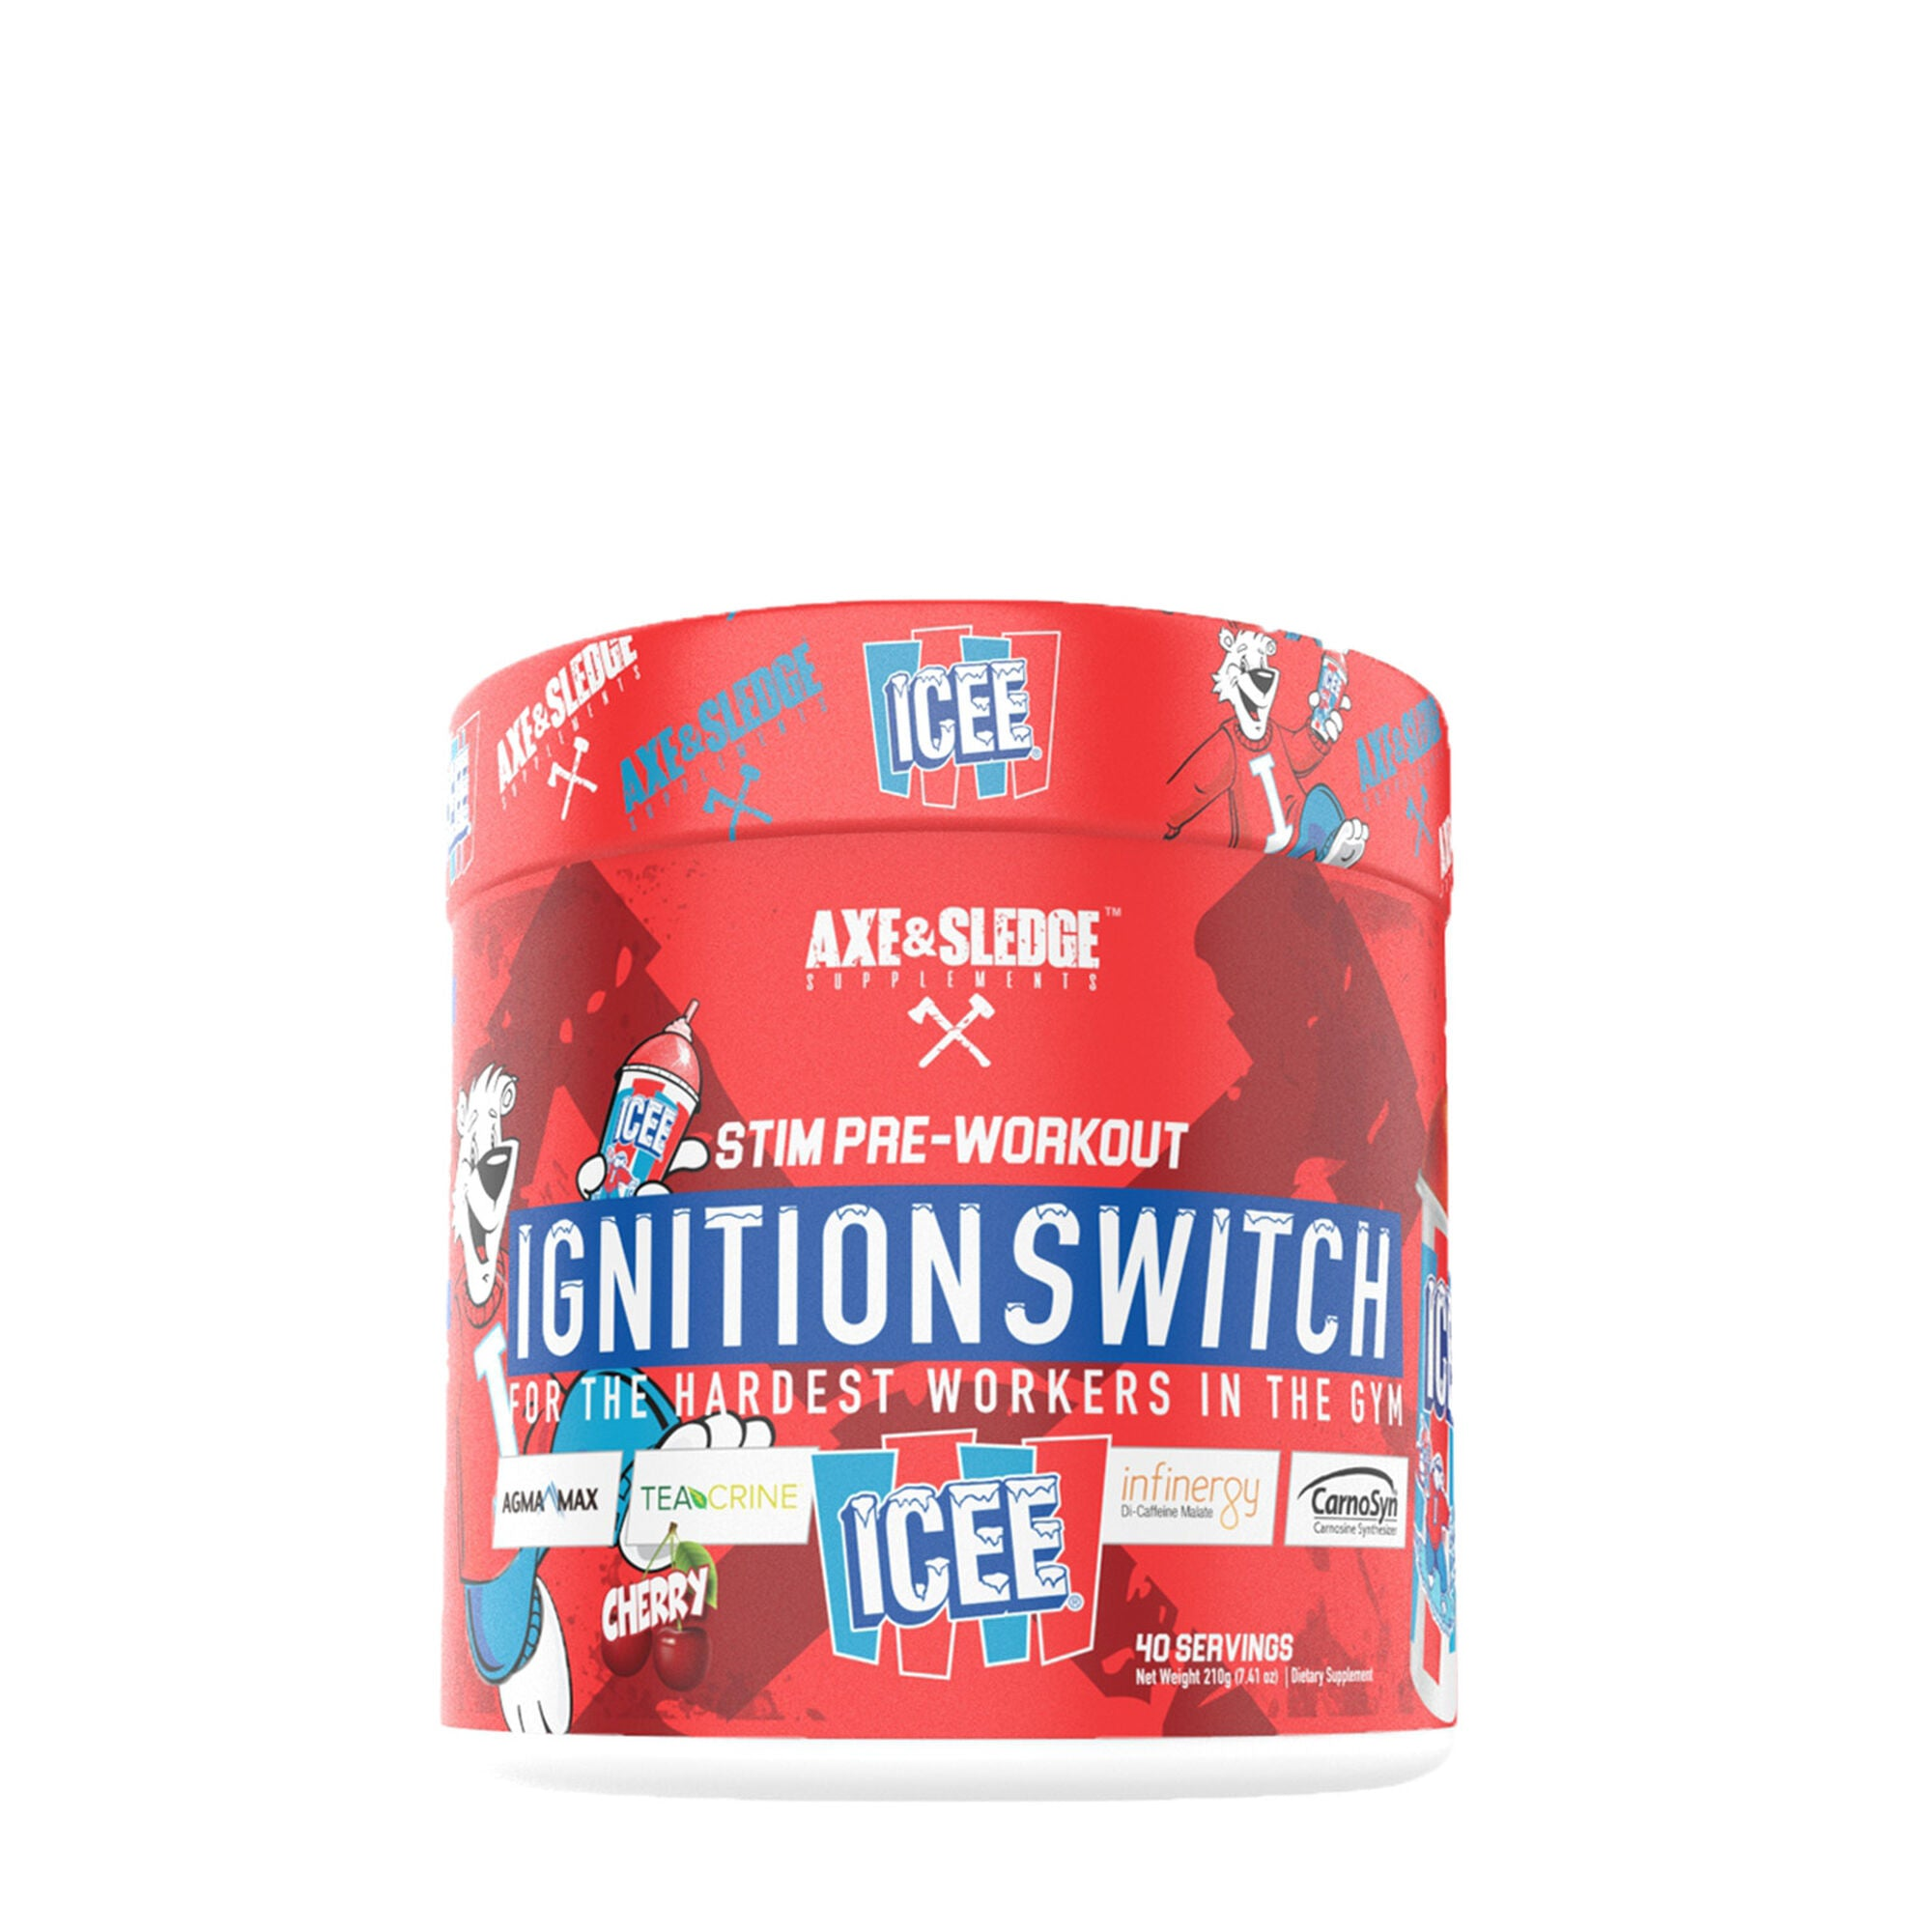 Axe and Sledge Ignition Switch ICEE